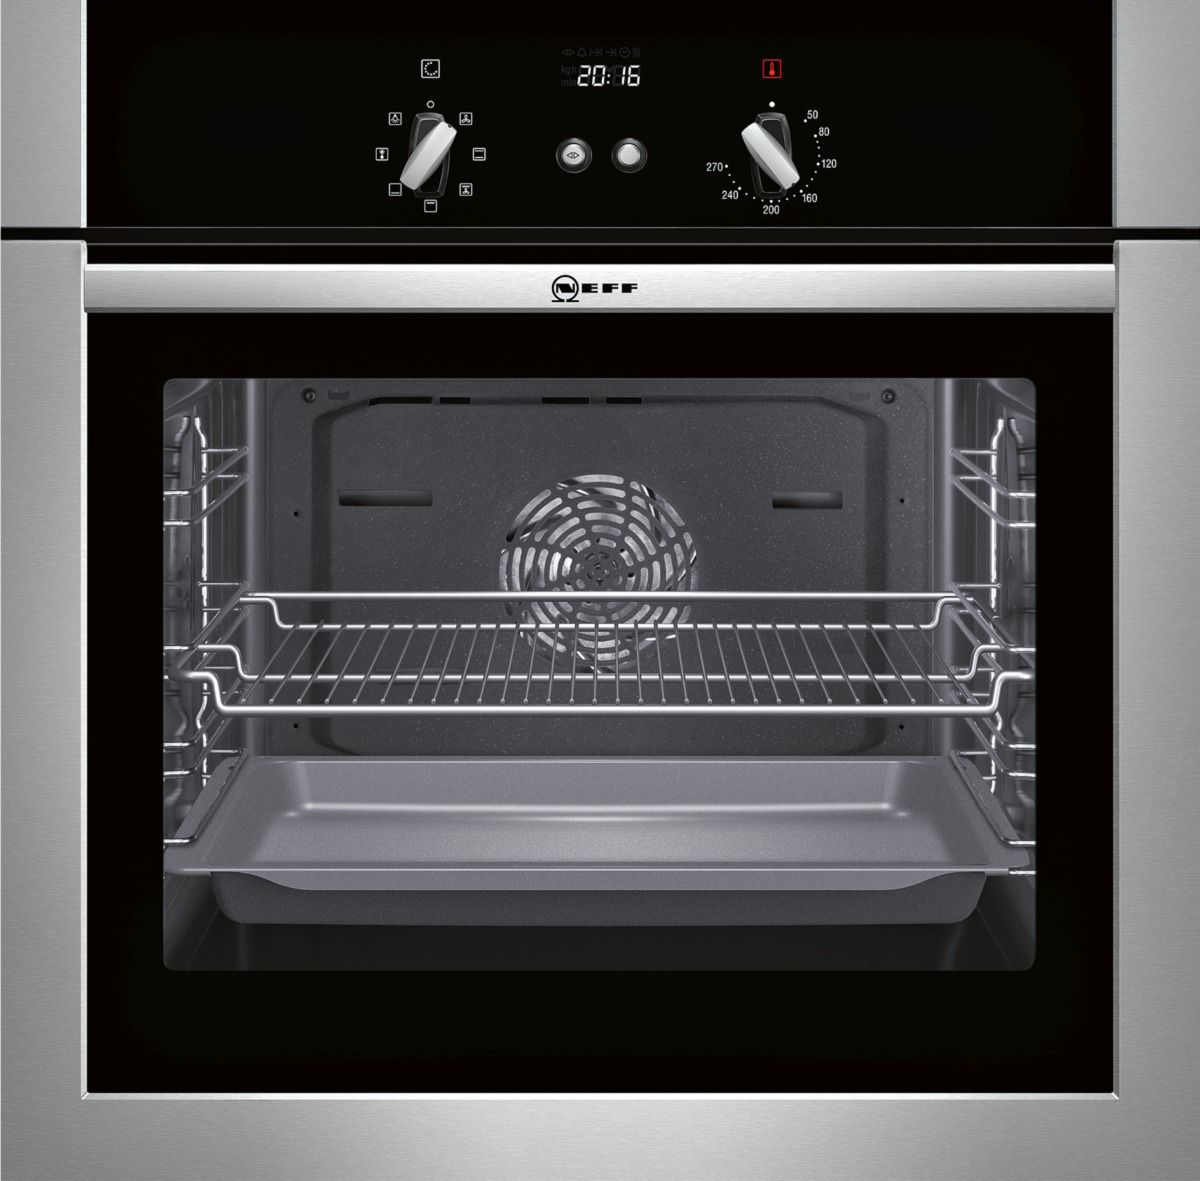 Neff B14m42n5gb Stainless Steel Effect Electric Single Oven